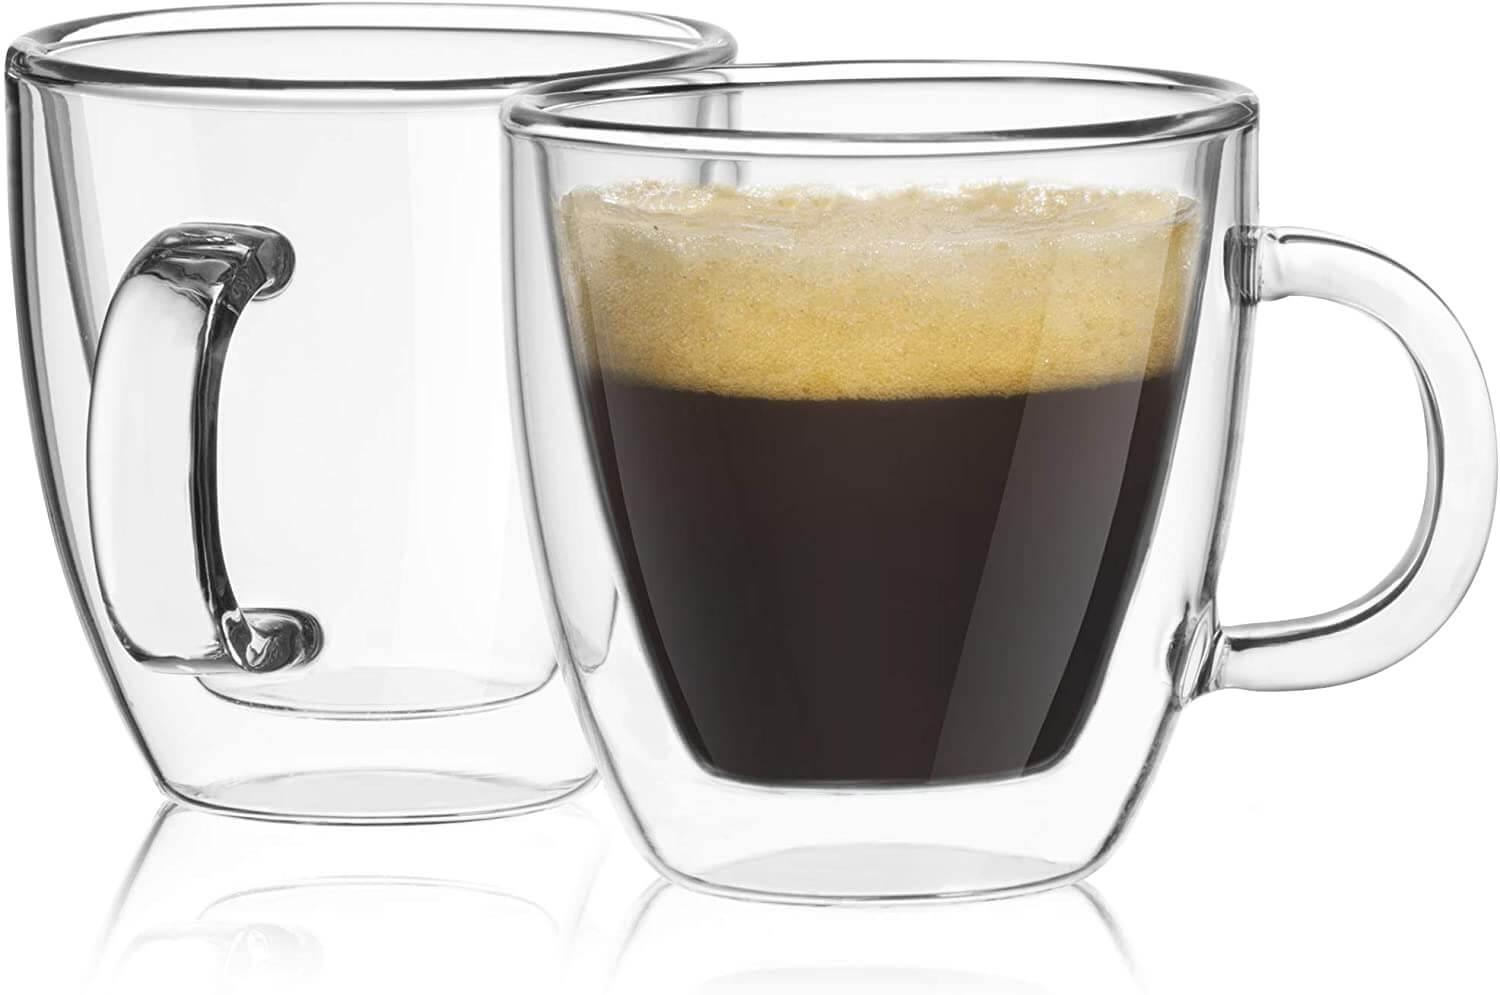 JoyJolt Savor Double-Wall Insulated Espresso Mugs